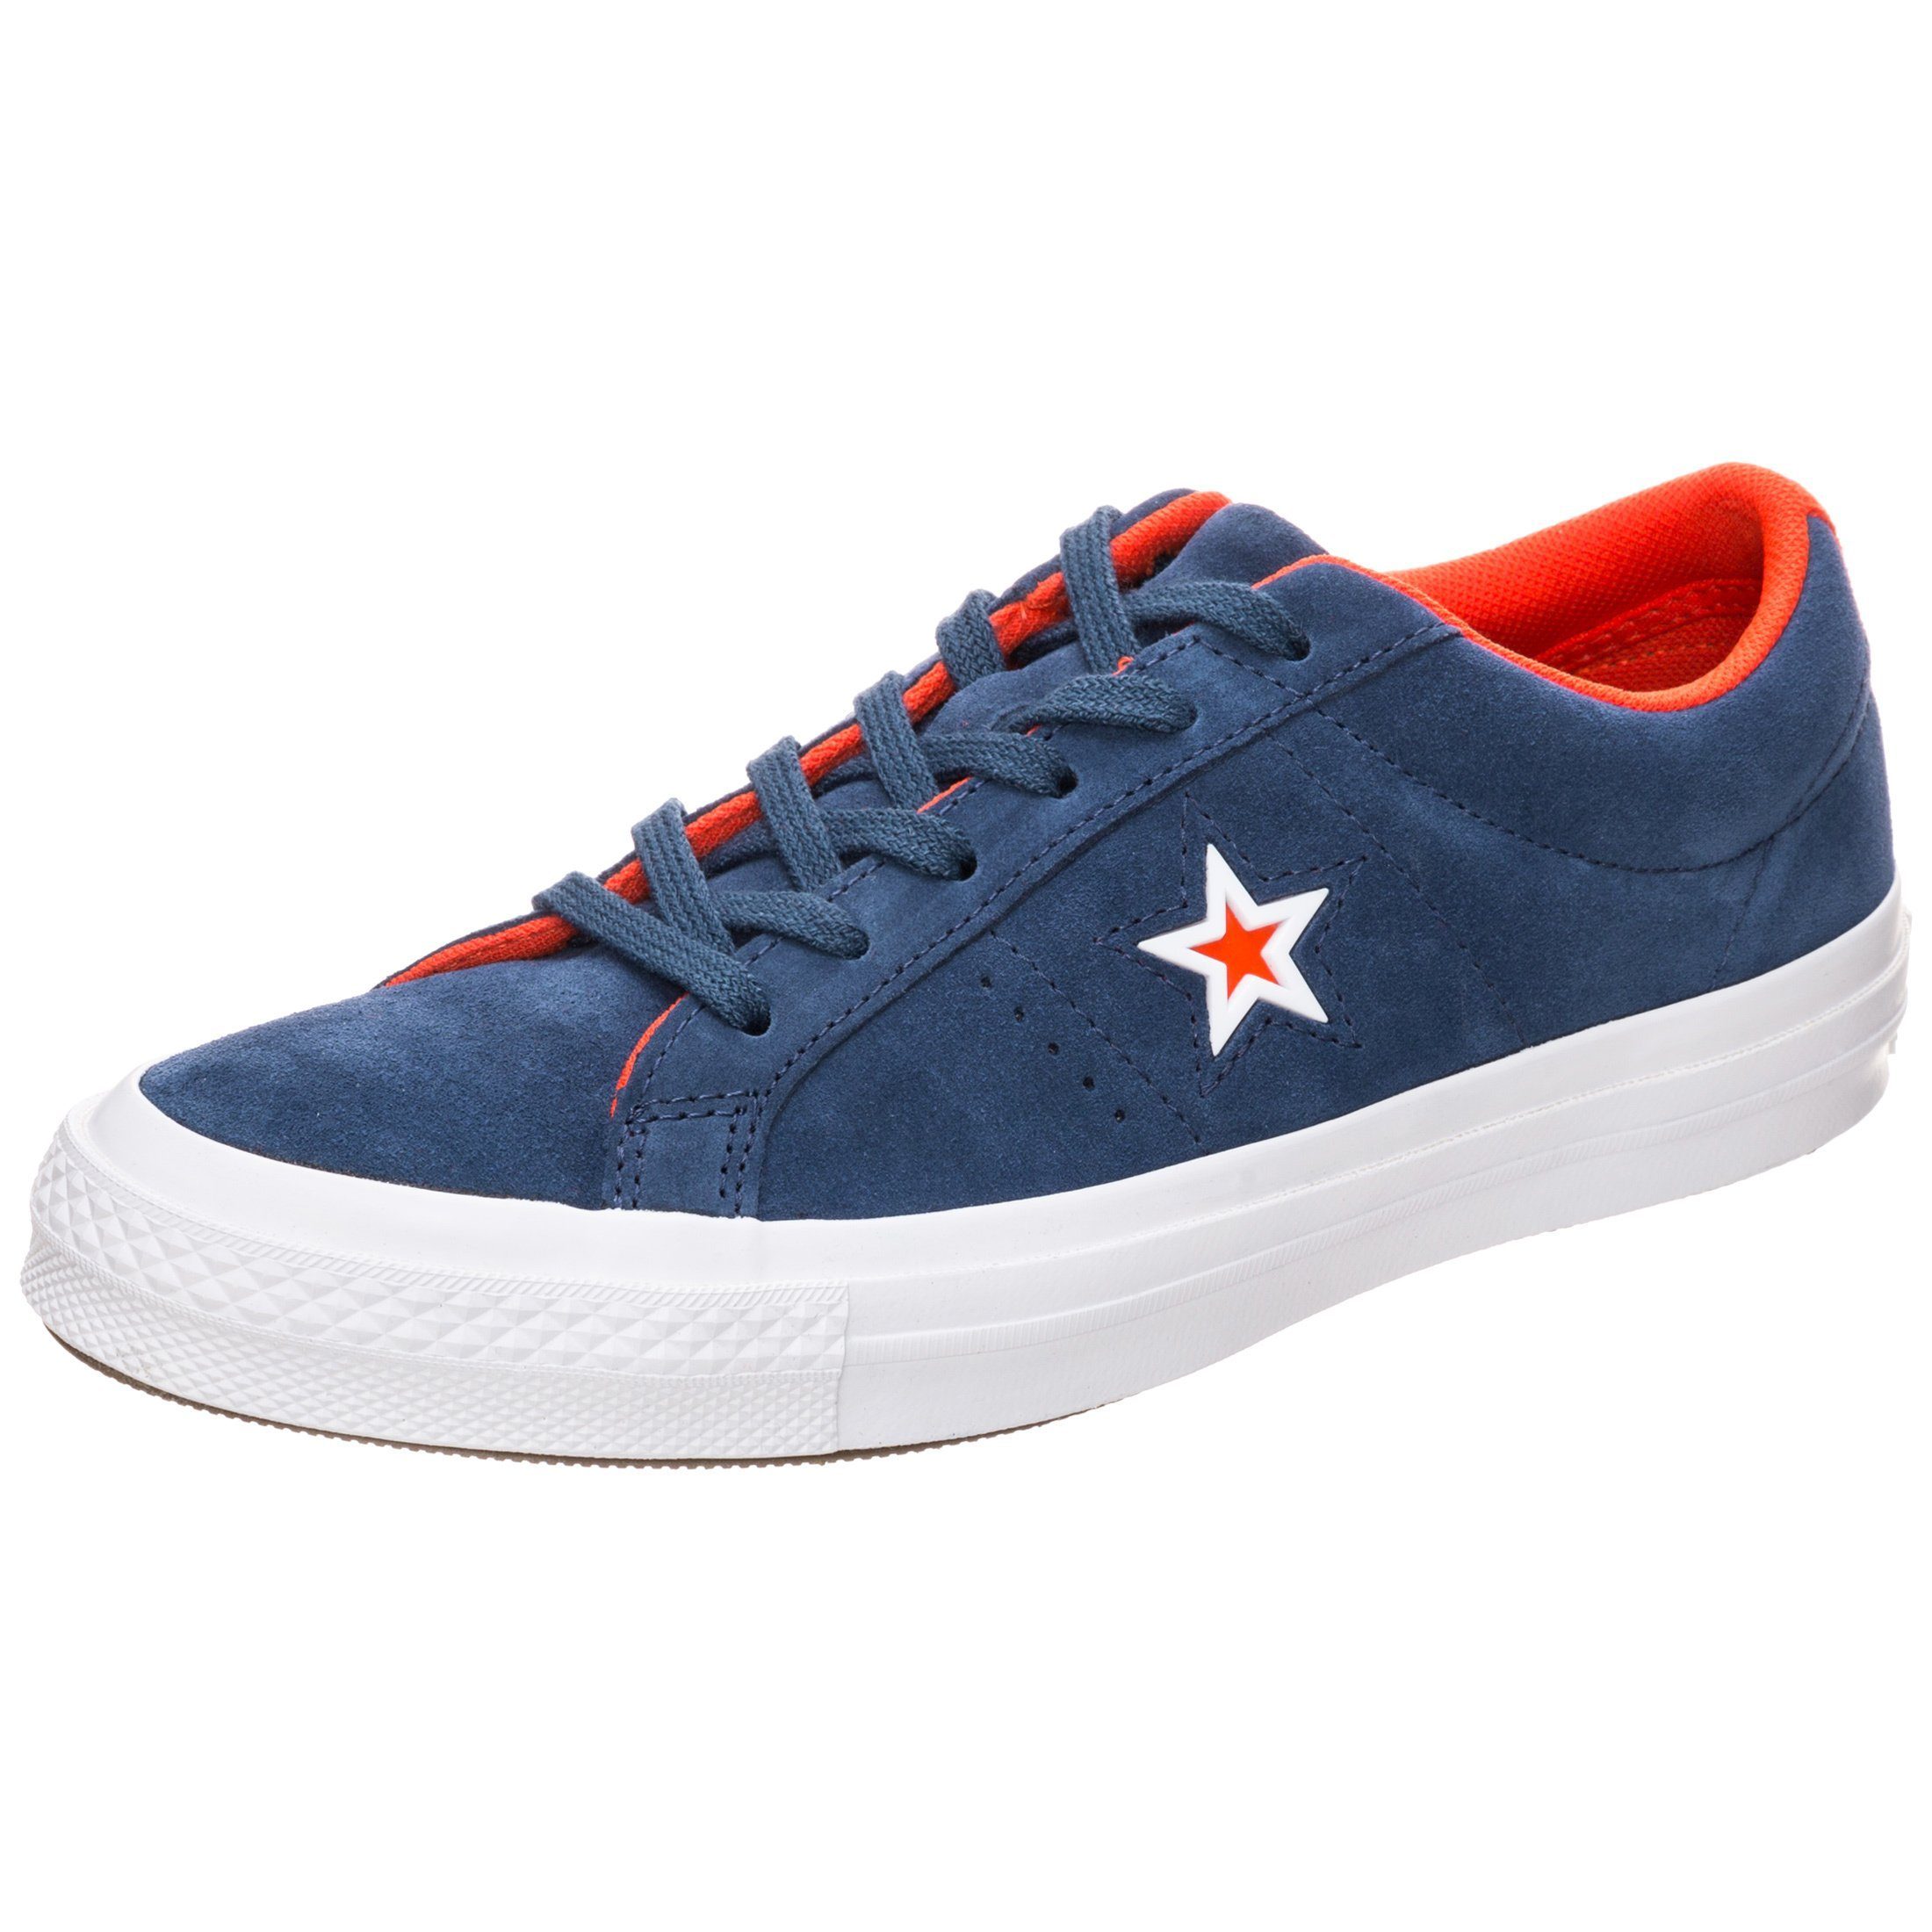 Converse Sneaker Cons One Star Suede Molded